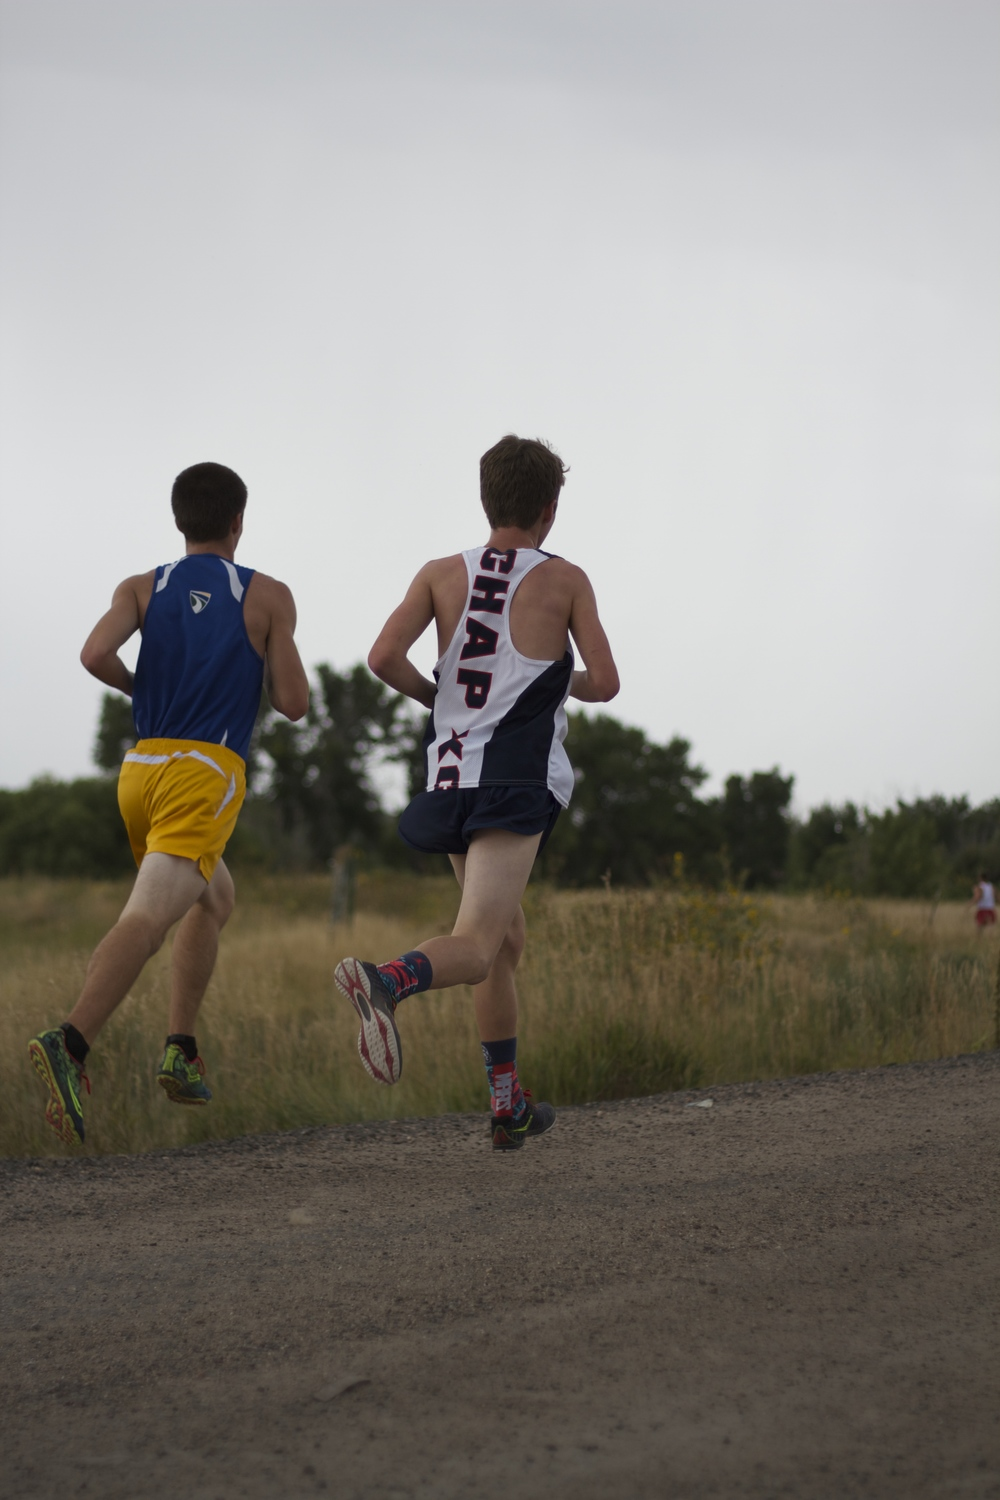 Chaparral Boys Cross Country races in hopes of placing well at the state competition. Photo by Sydney Mullen